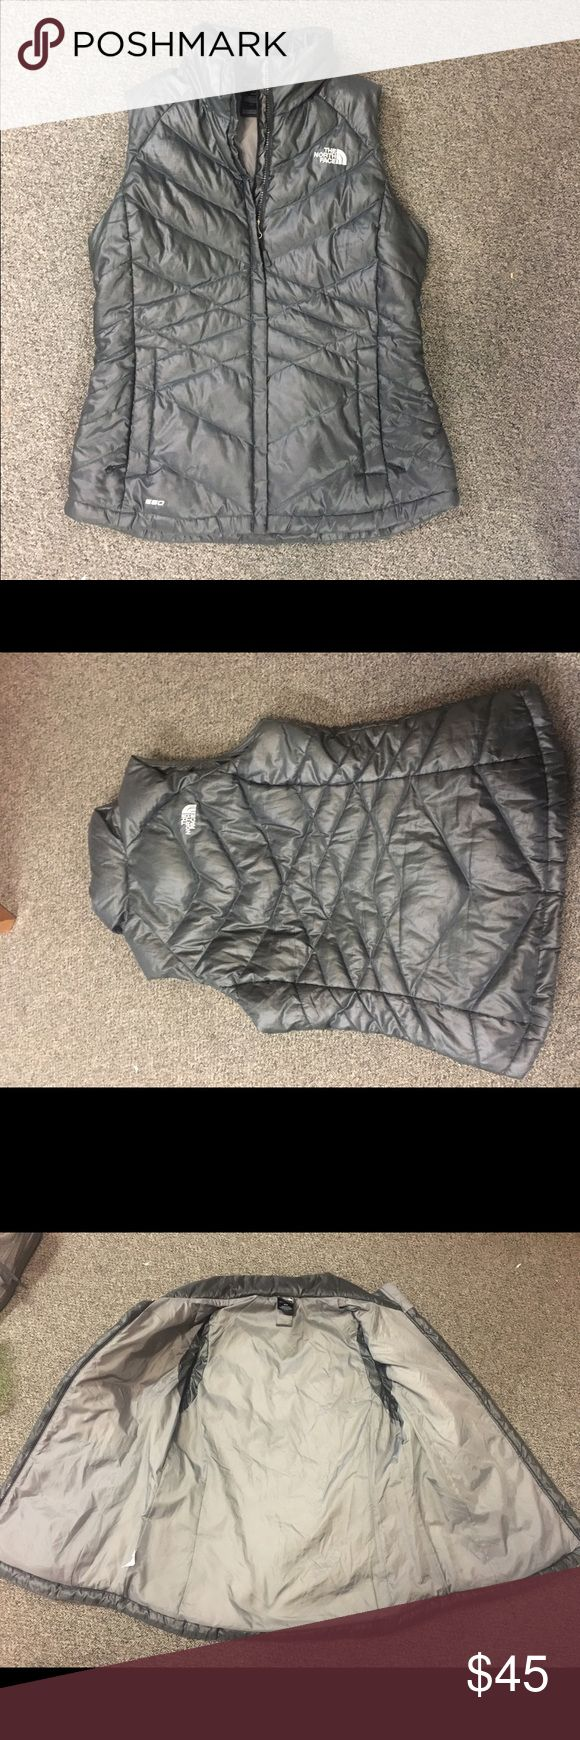 North Face Vest Medium Women's North Face vest. No holes or tears, great condition. It's a darker shade of grey, not quite black. Super comfy and keeps you really warm. North Face Jackets & Coats Vests